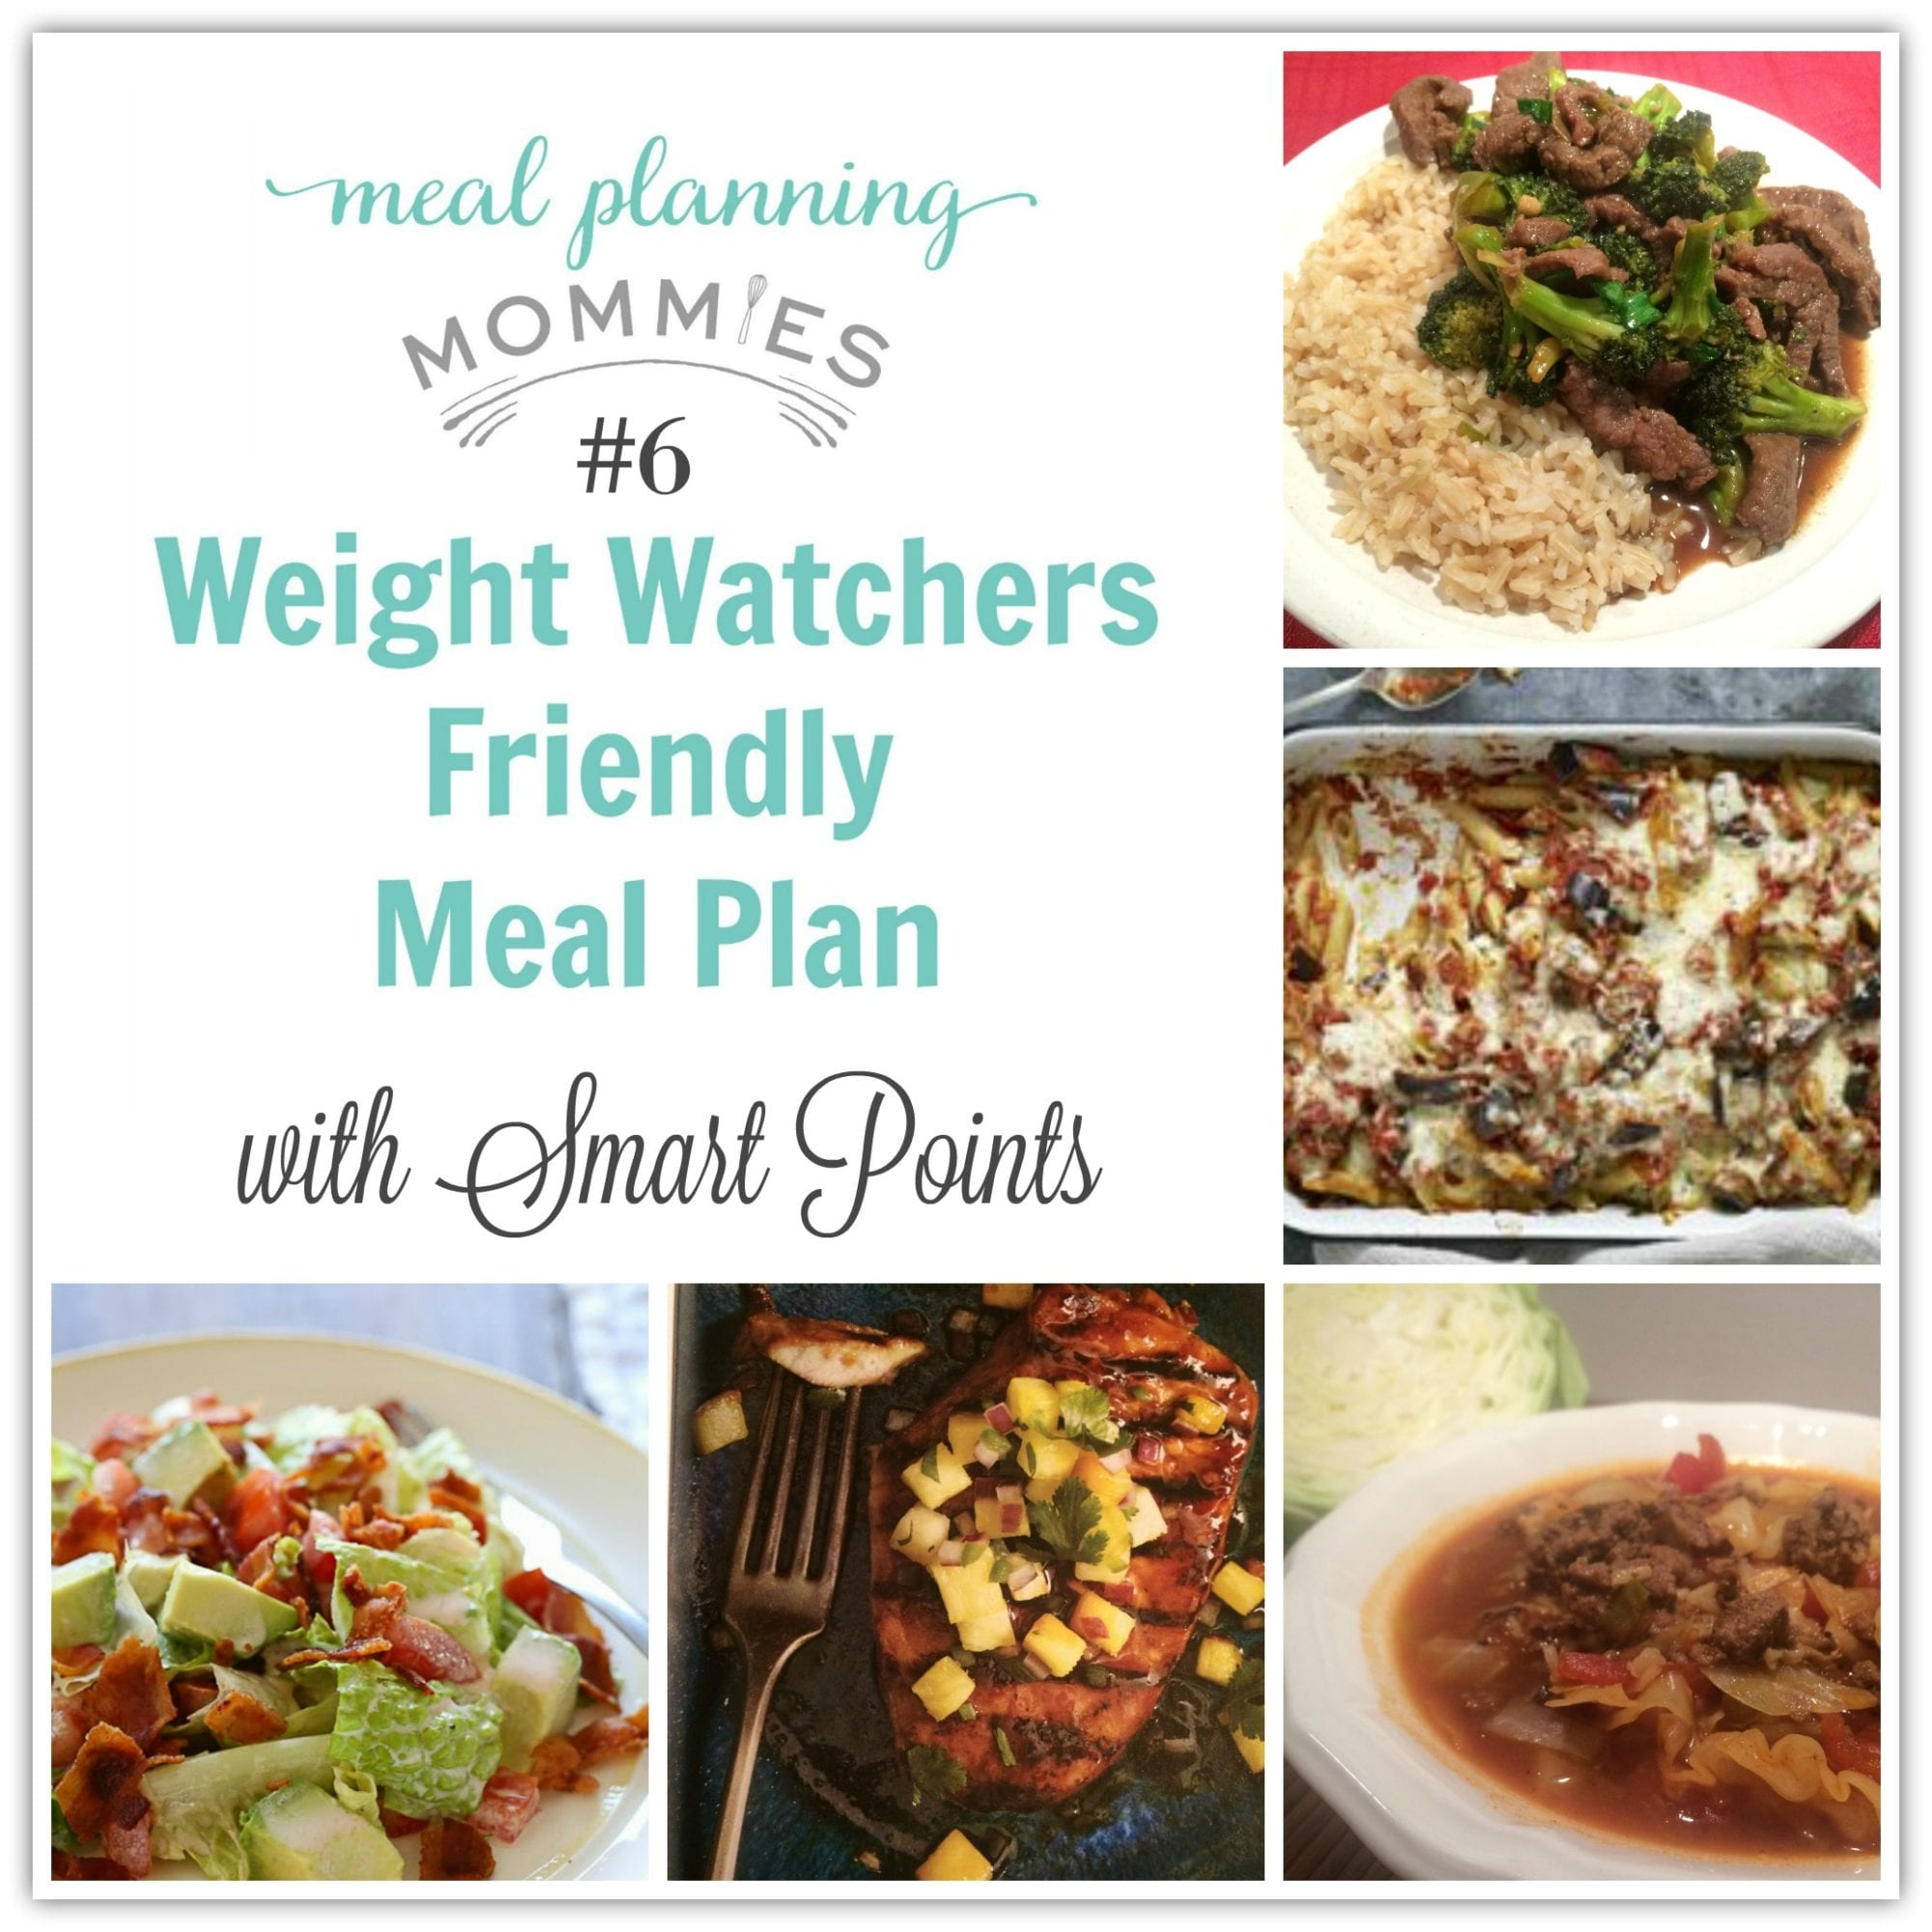 meal plan with skinnytaste recipes and weight watcher smart points found on planning mommies